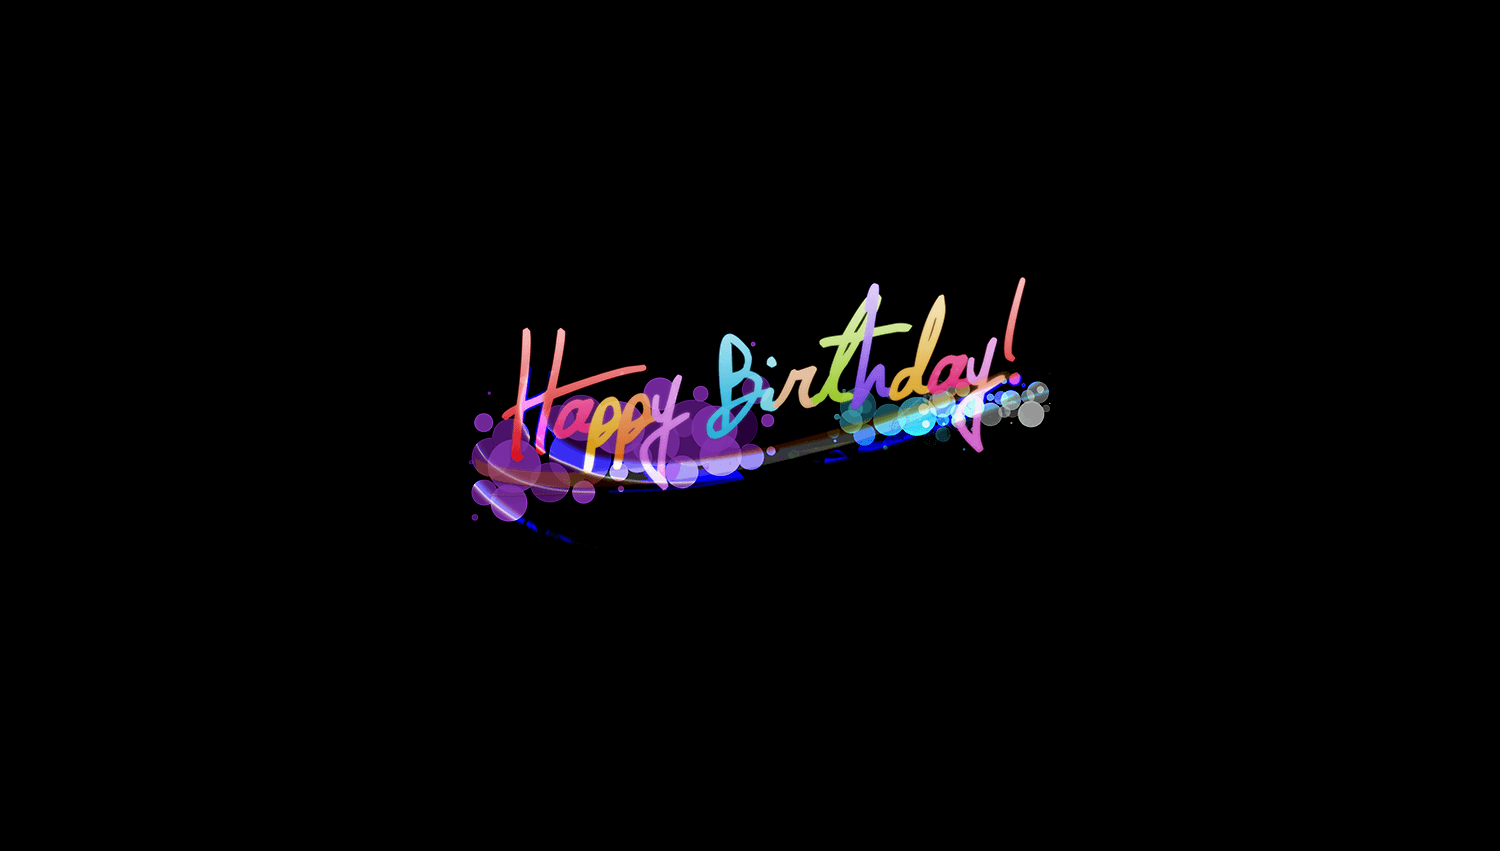 Wallpapers Of Happy Birthday 1500x851